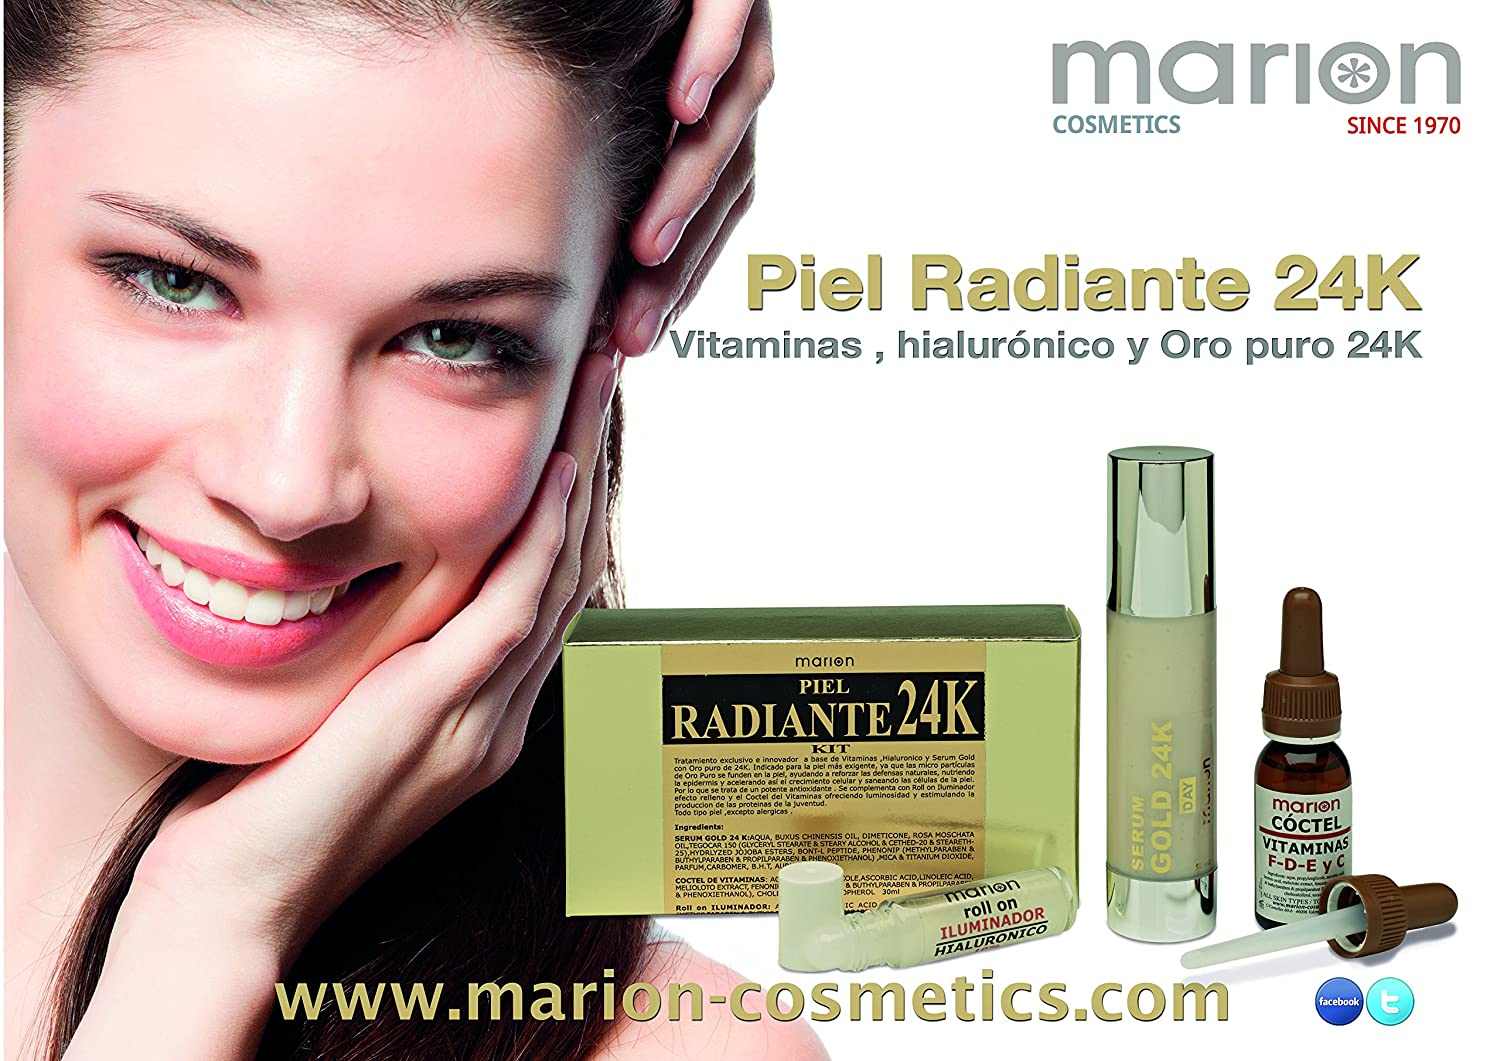 Serum Gold 24k + Vitaminas C - F - D - E + Roll On Iluminador Hialuronico (50 ml + 30 ml + 12 ml)  . KIT PIEL RADIANTE 3 Productos para la ...